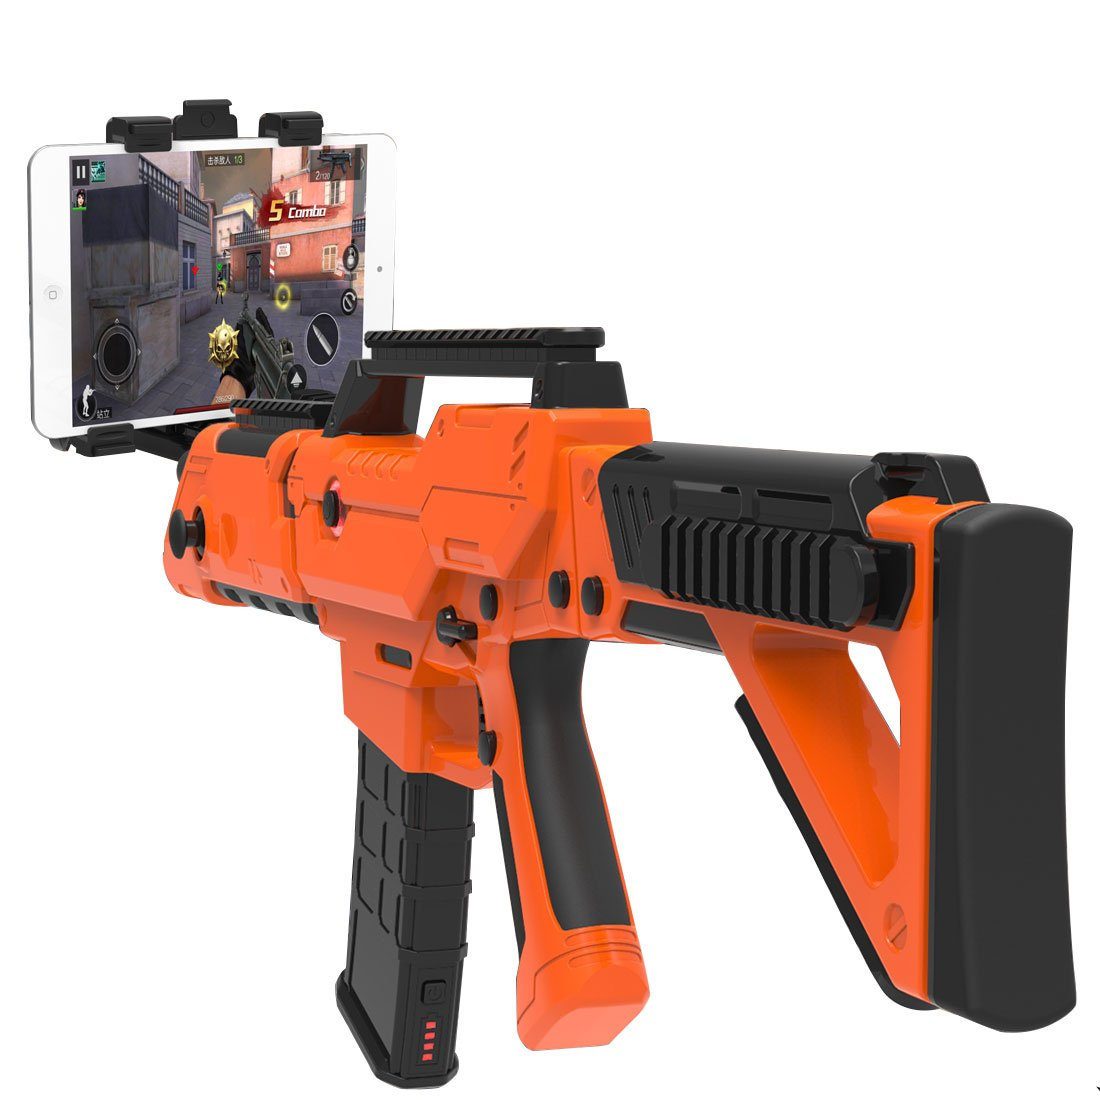 VR Bluetooth Game Gun for HTC VIVE,Game Pad Shooting Controller TPS FPS with Motor Vibration for 4 to 6 Inch Smartphone iPhone Samsung Tablet iPad Wireless Android,BENEVE(Orange) by BENEVE